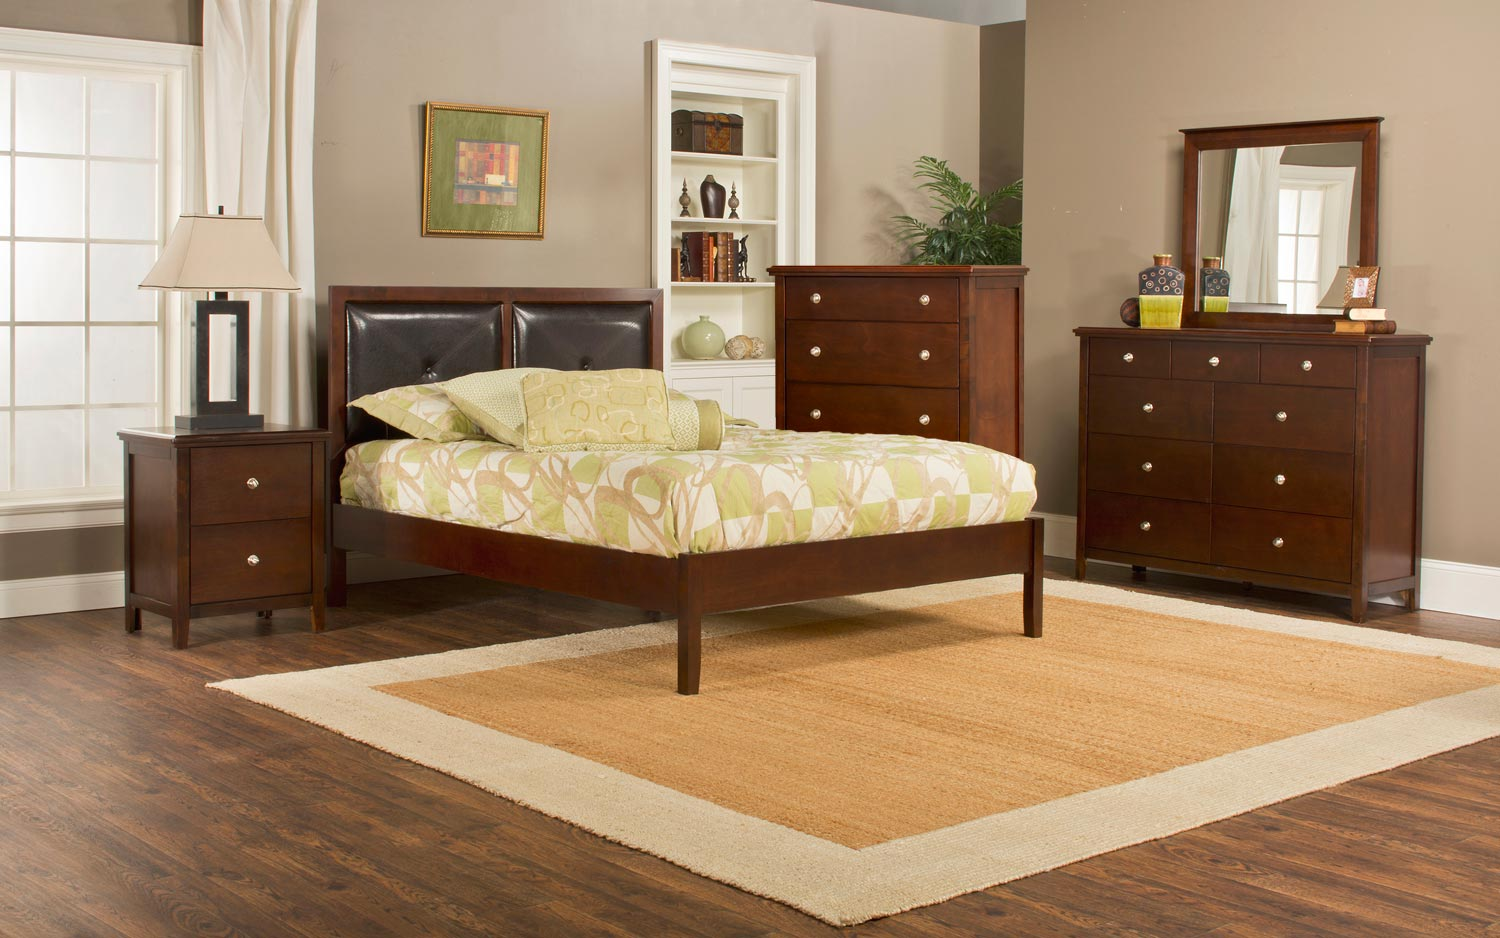 Hillsdale Metro Martin Platform 5-Piece Bedroom Collection - Cherry